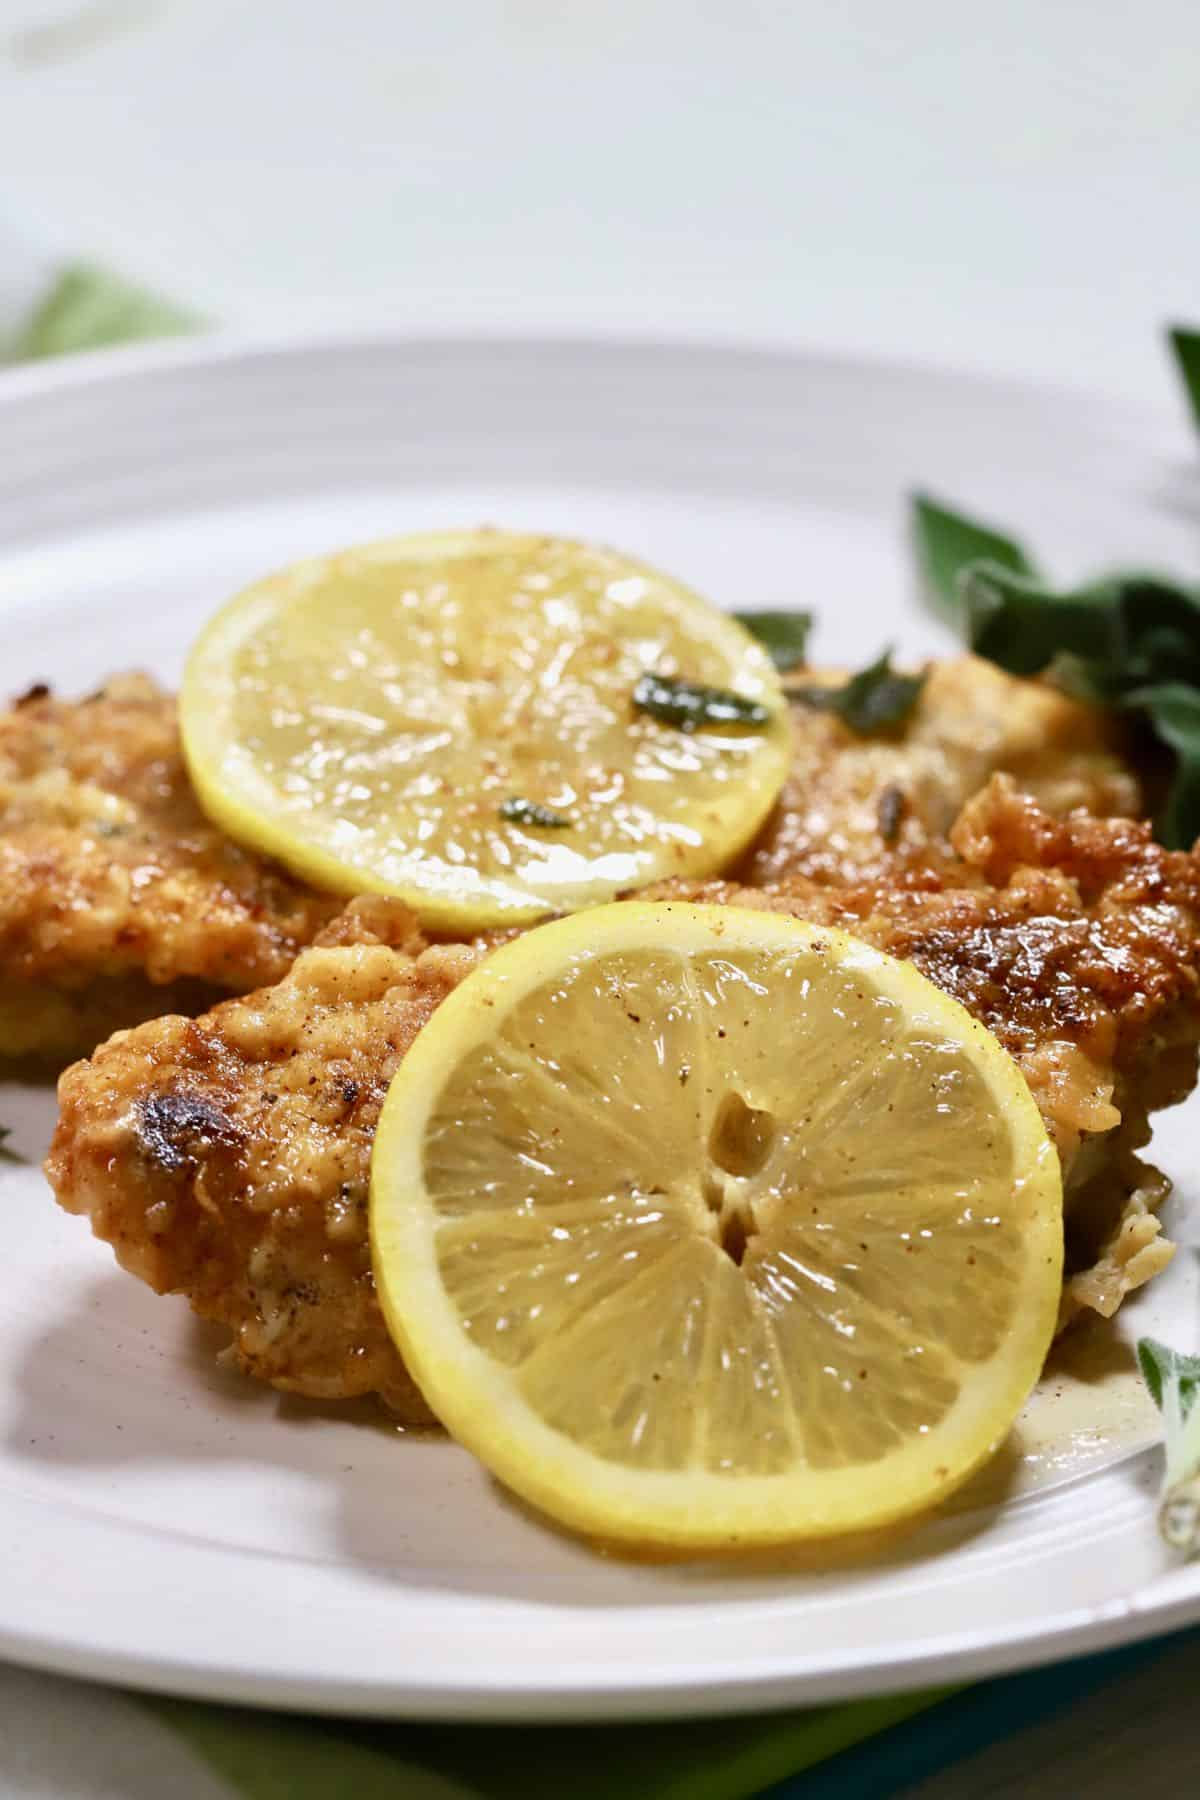 A white plate with slices of lemon on top of two pieces of fried chicken.